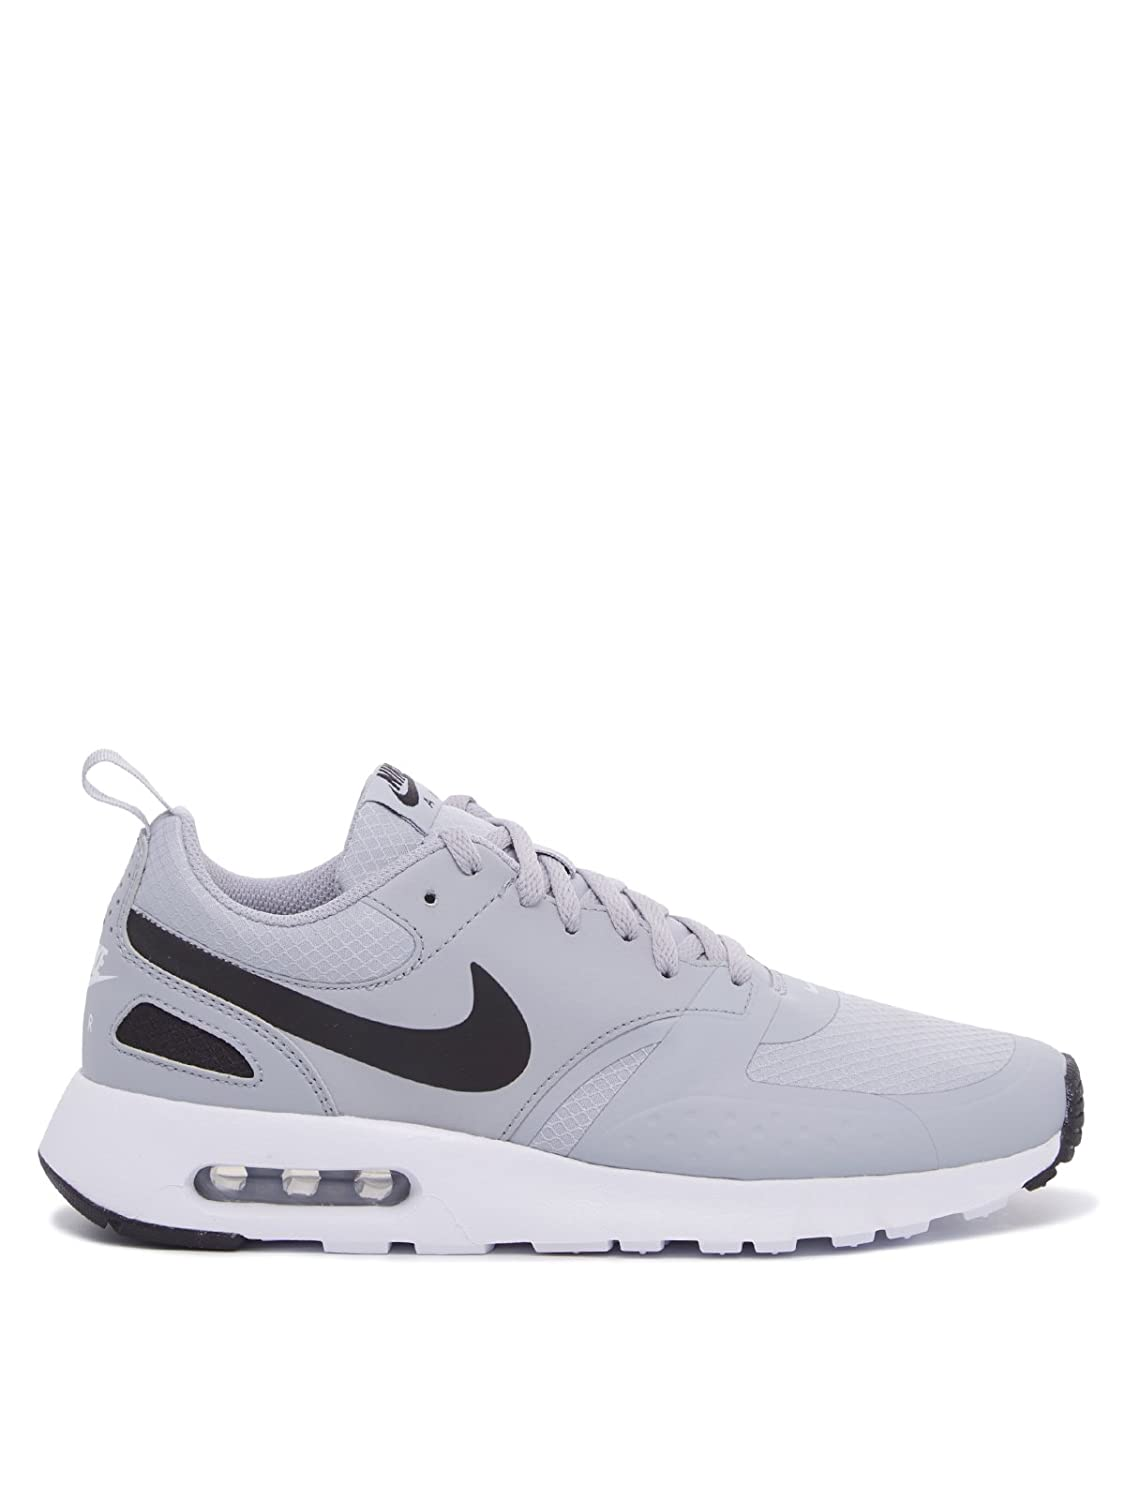 new style a62de 6a1c1 Nike Air Max Vision Se, Scarpe da Fitness Uomo  MainApps  Amazon.it   Abbigliamento